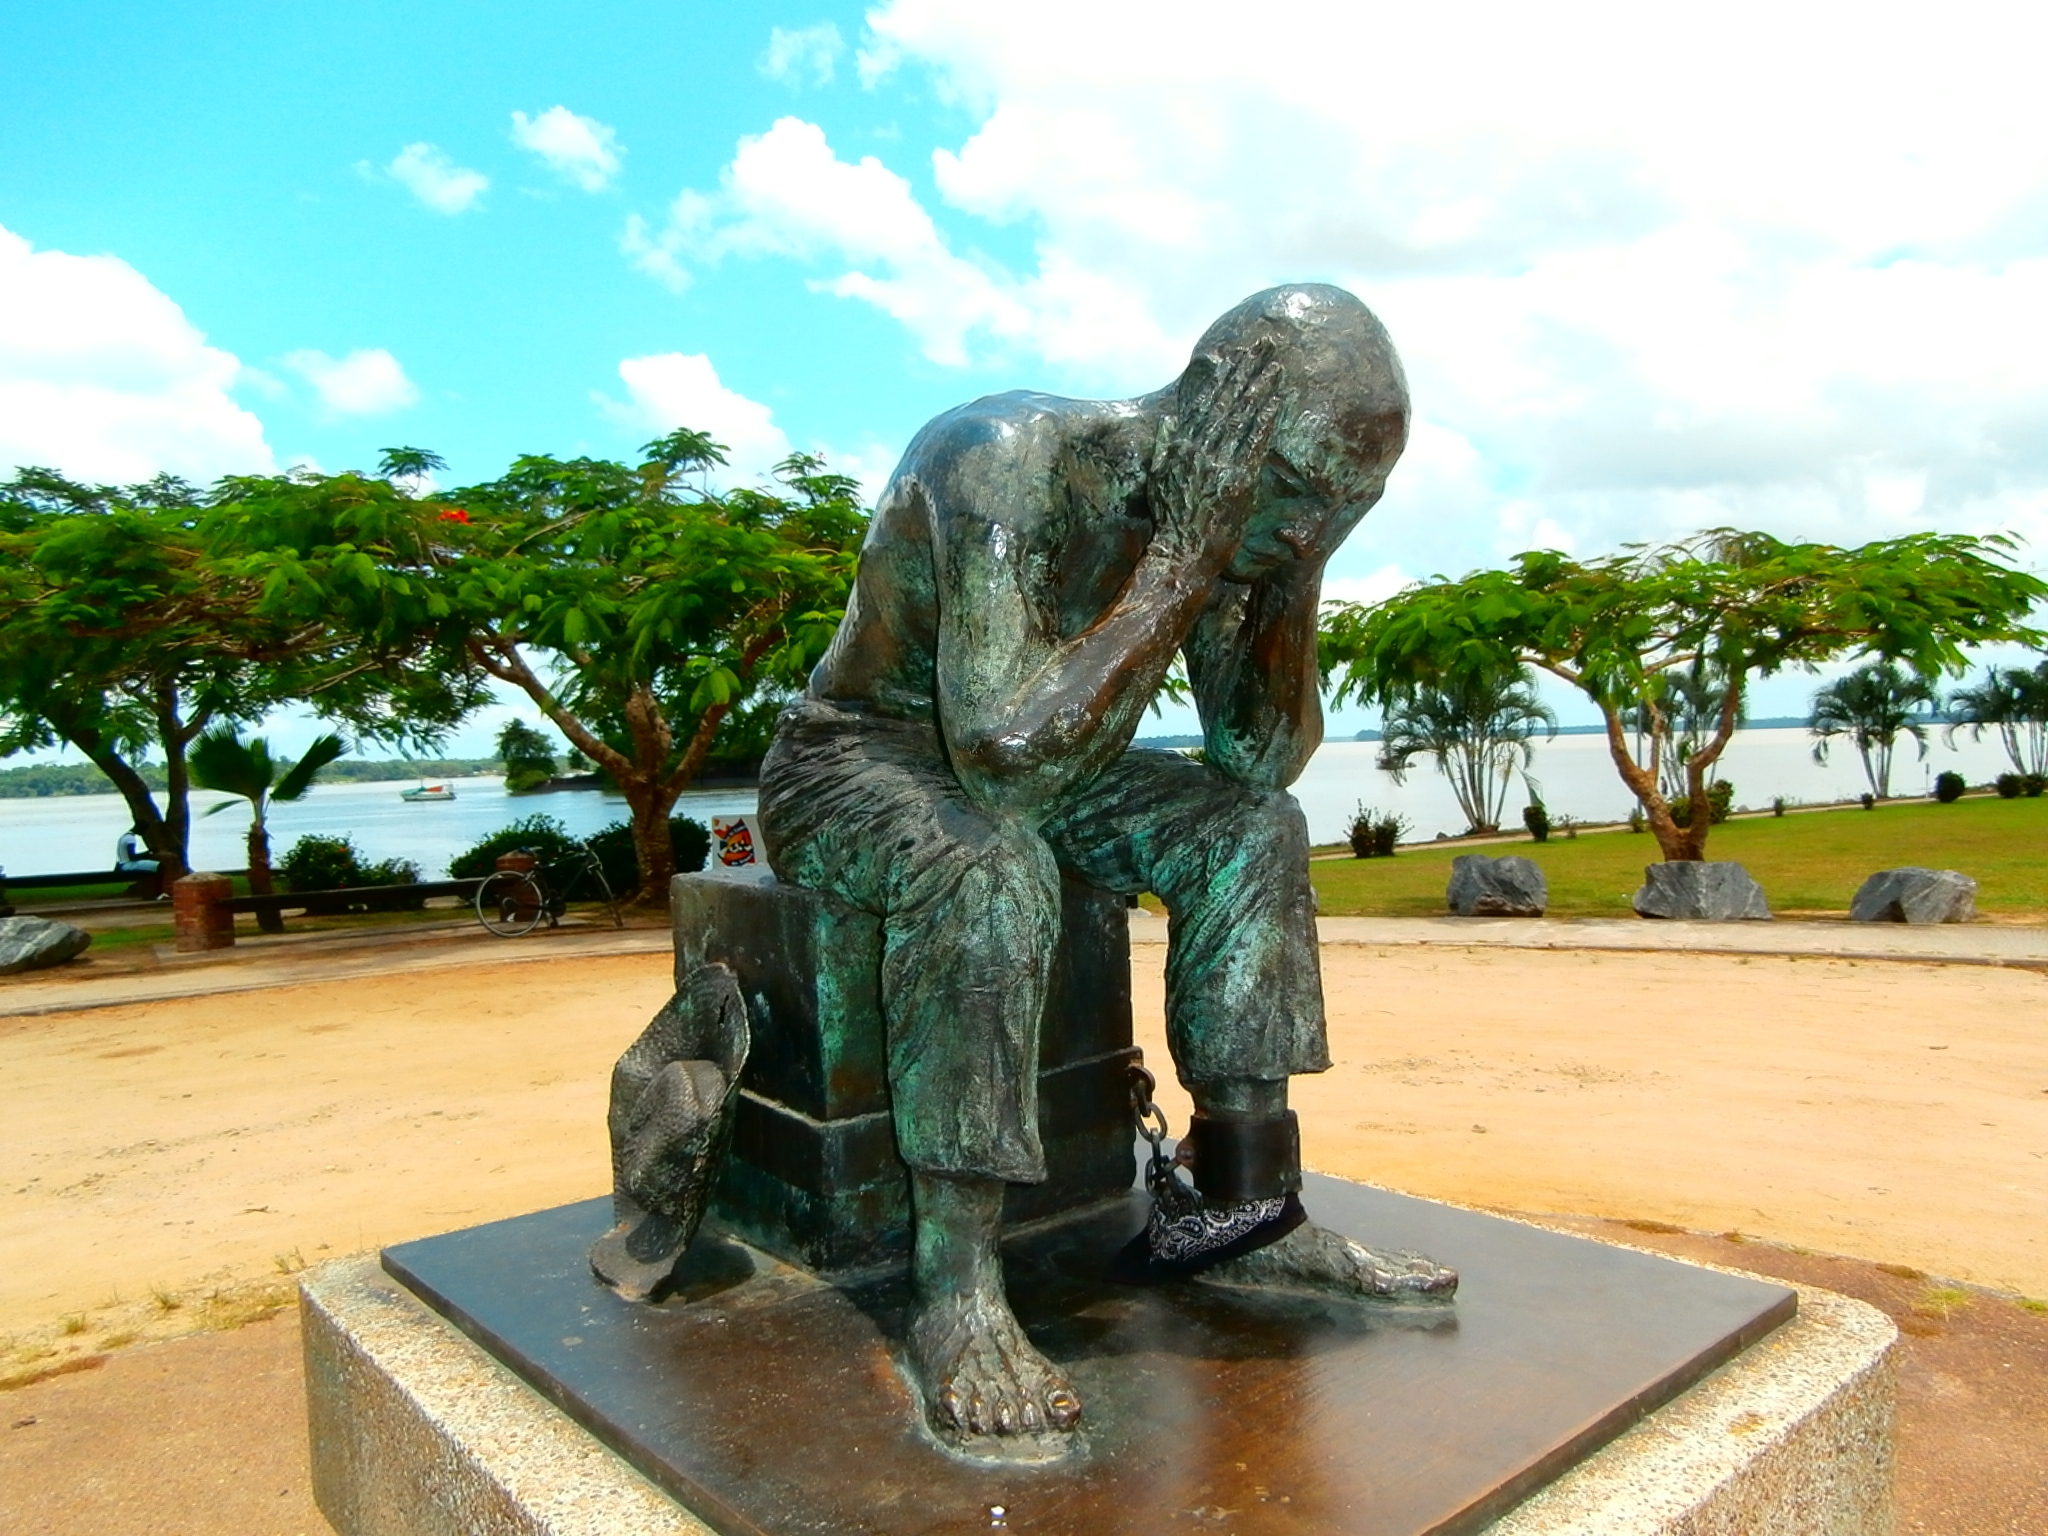 """The Convict"" - Statue in St. Laurent du Maroni, French Guyana"